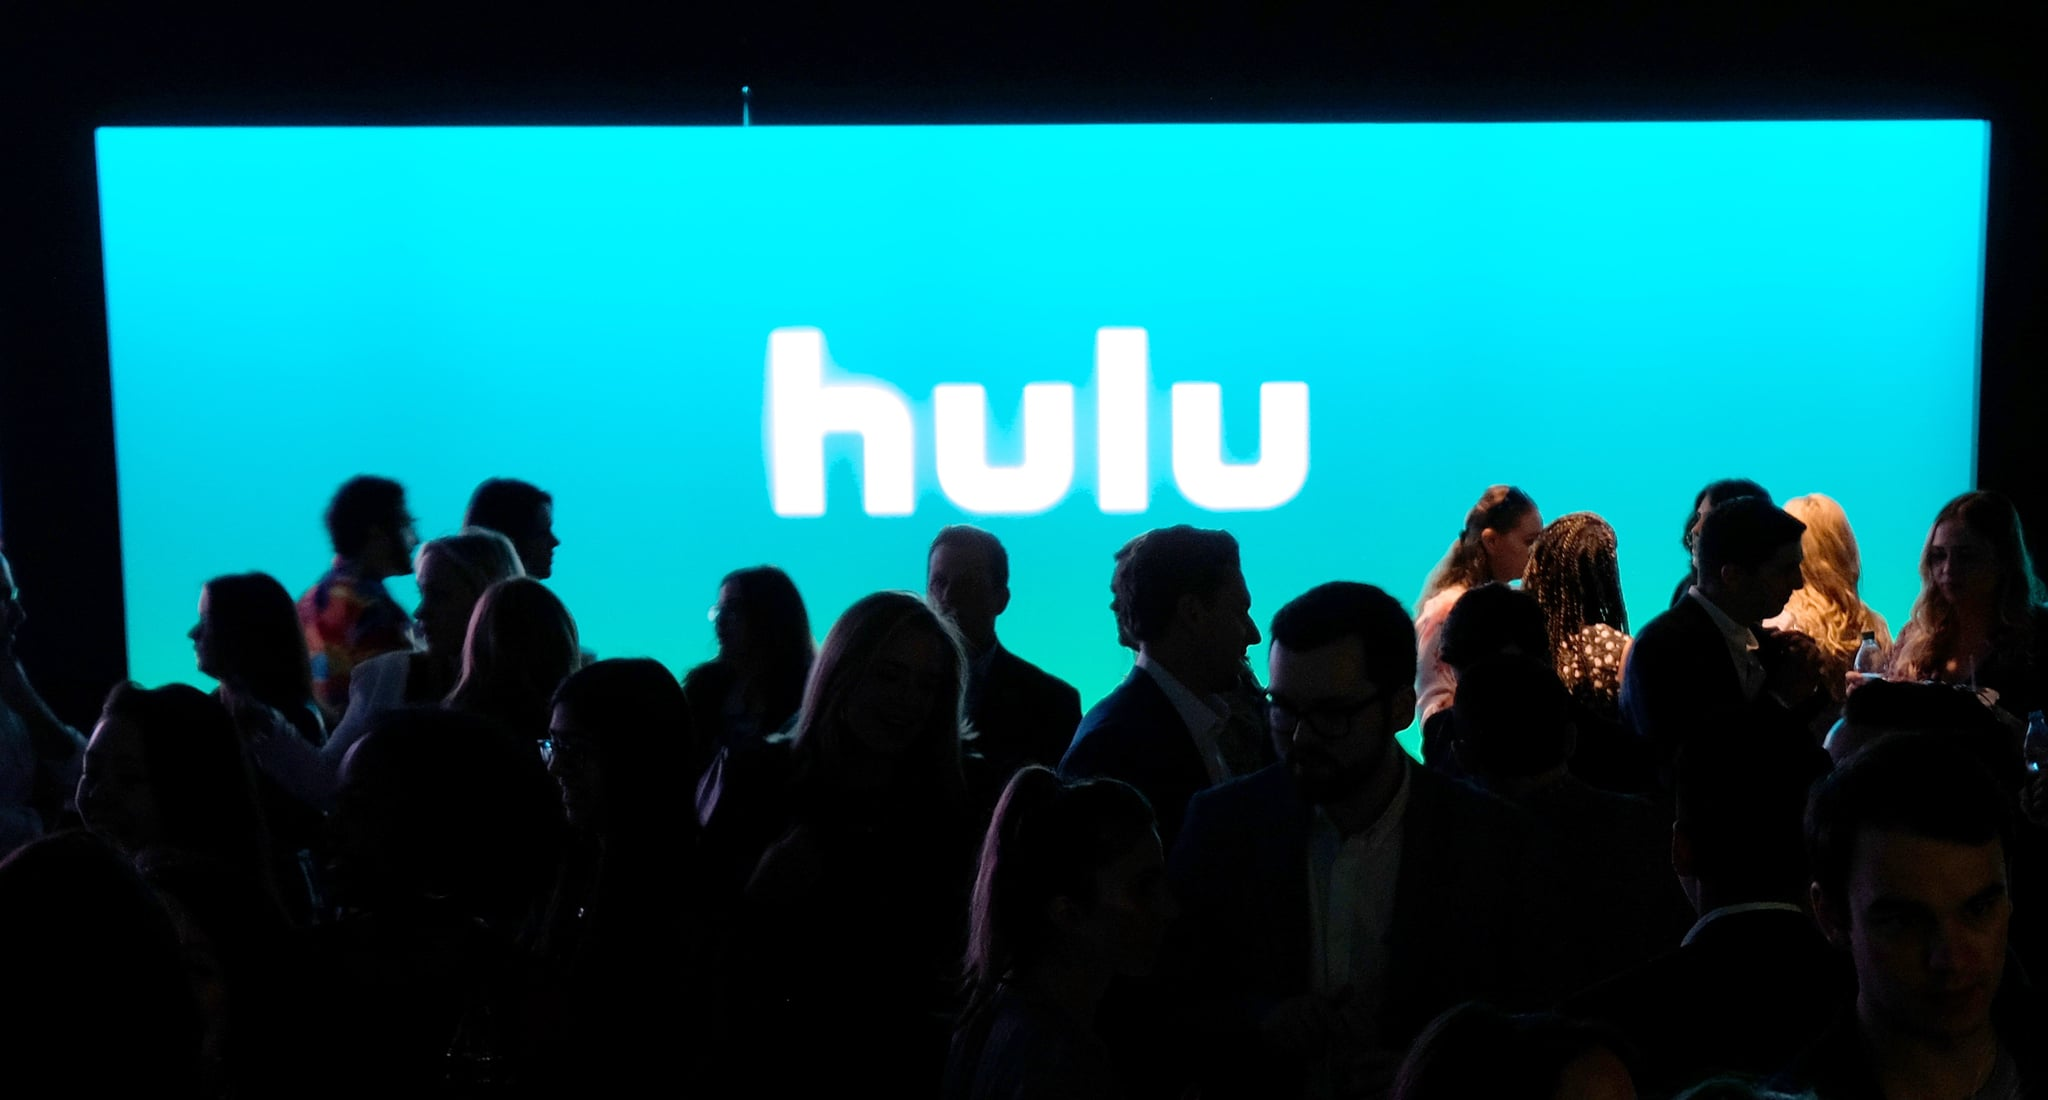 NEW YORK, NY - MAY 02:  Guests enter the theatre during Hulu Upfront 2018 at The Hulu theatre at Madison Square Garden on May 2, 2018 in New York City.  (Photo by Dia Dipasupil/Getty Images for Hulu)